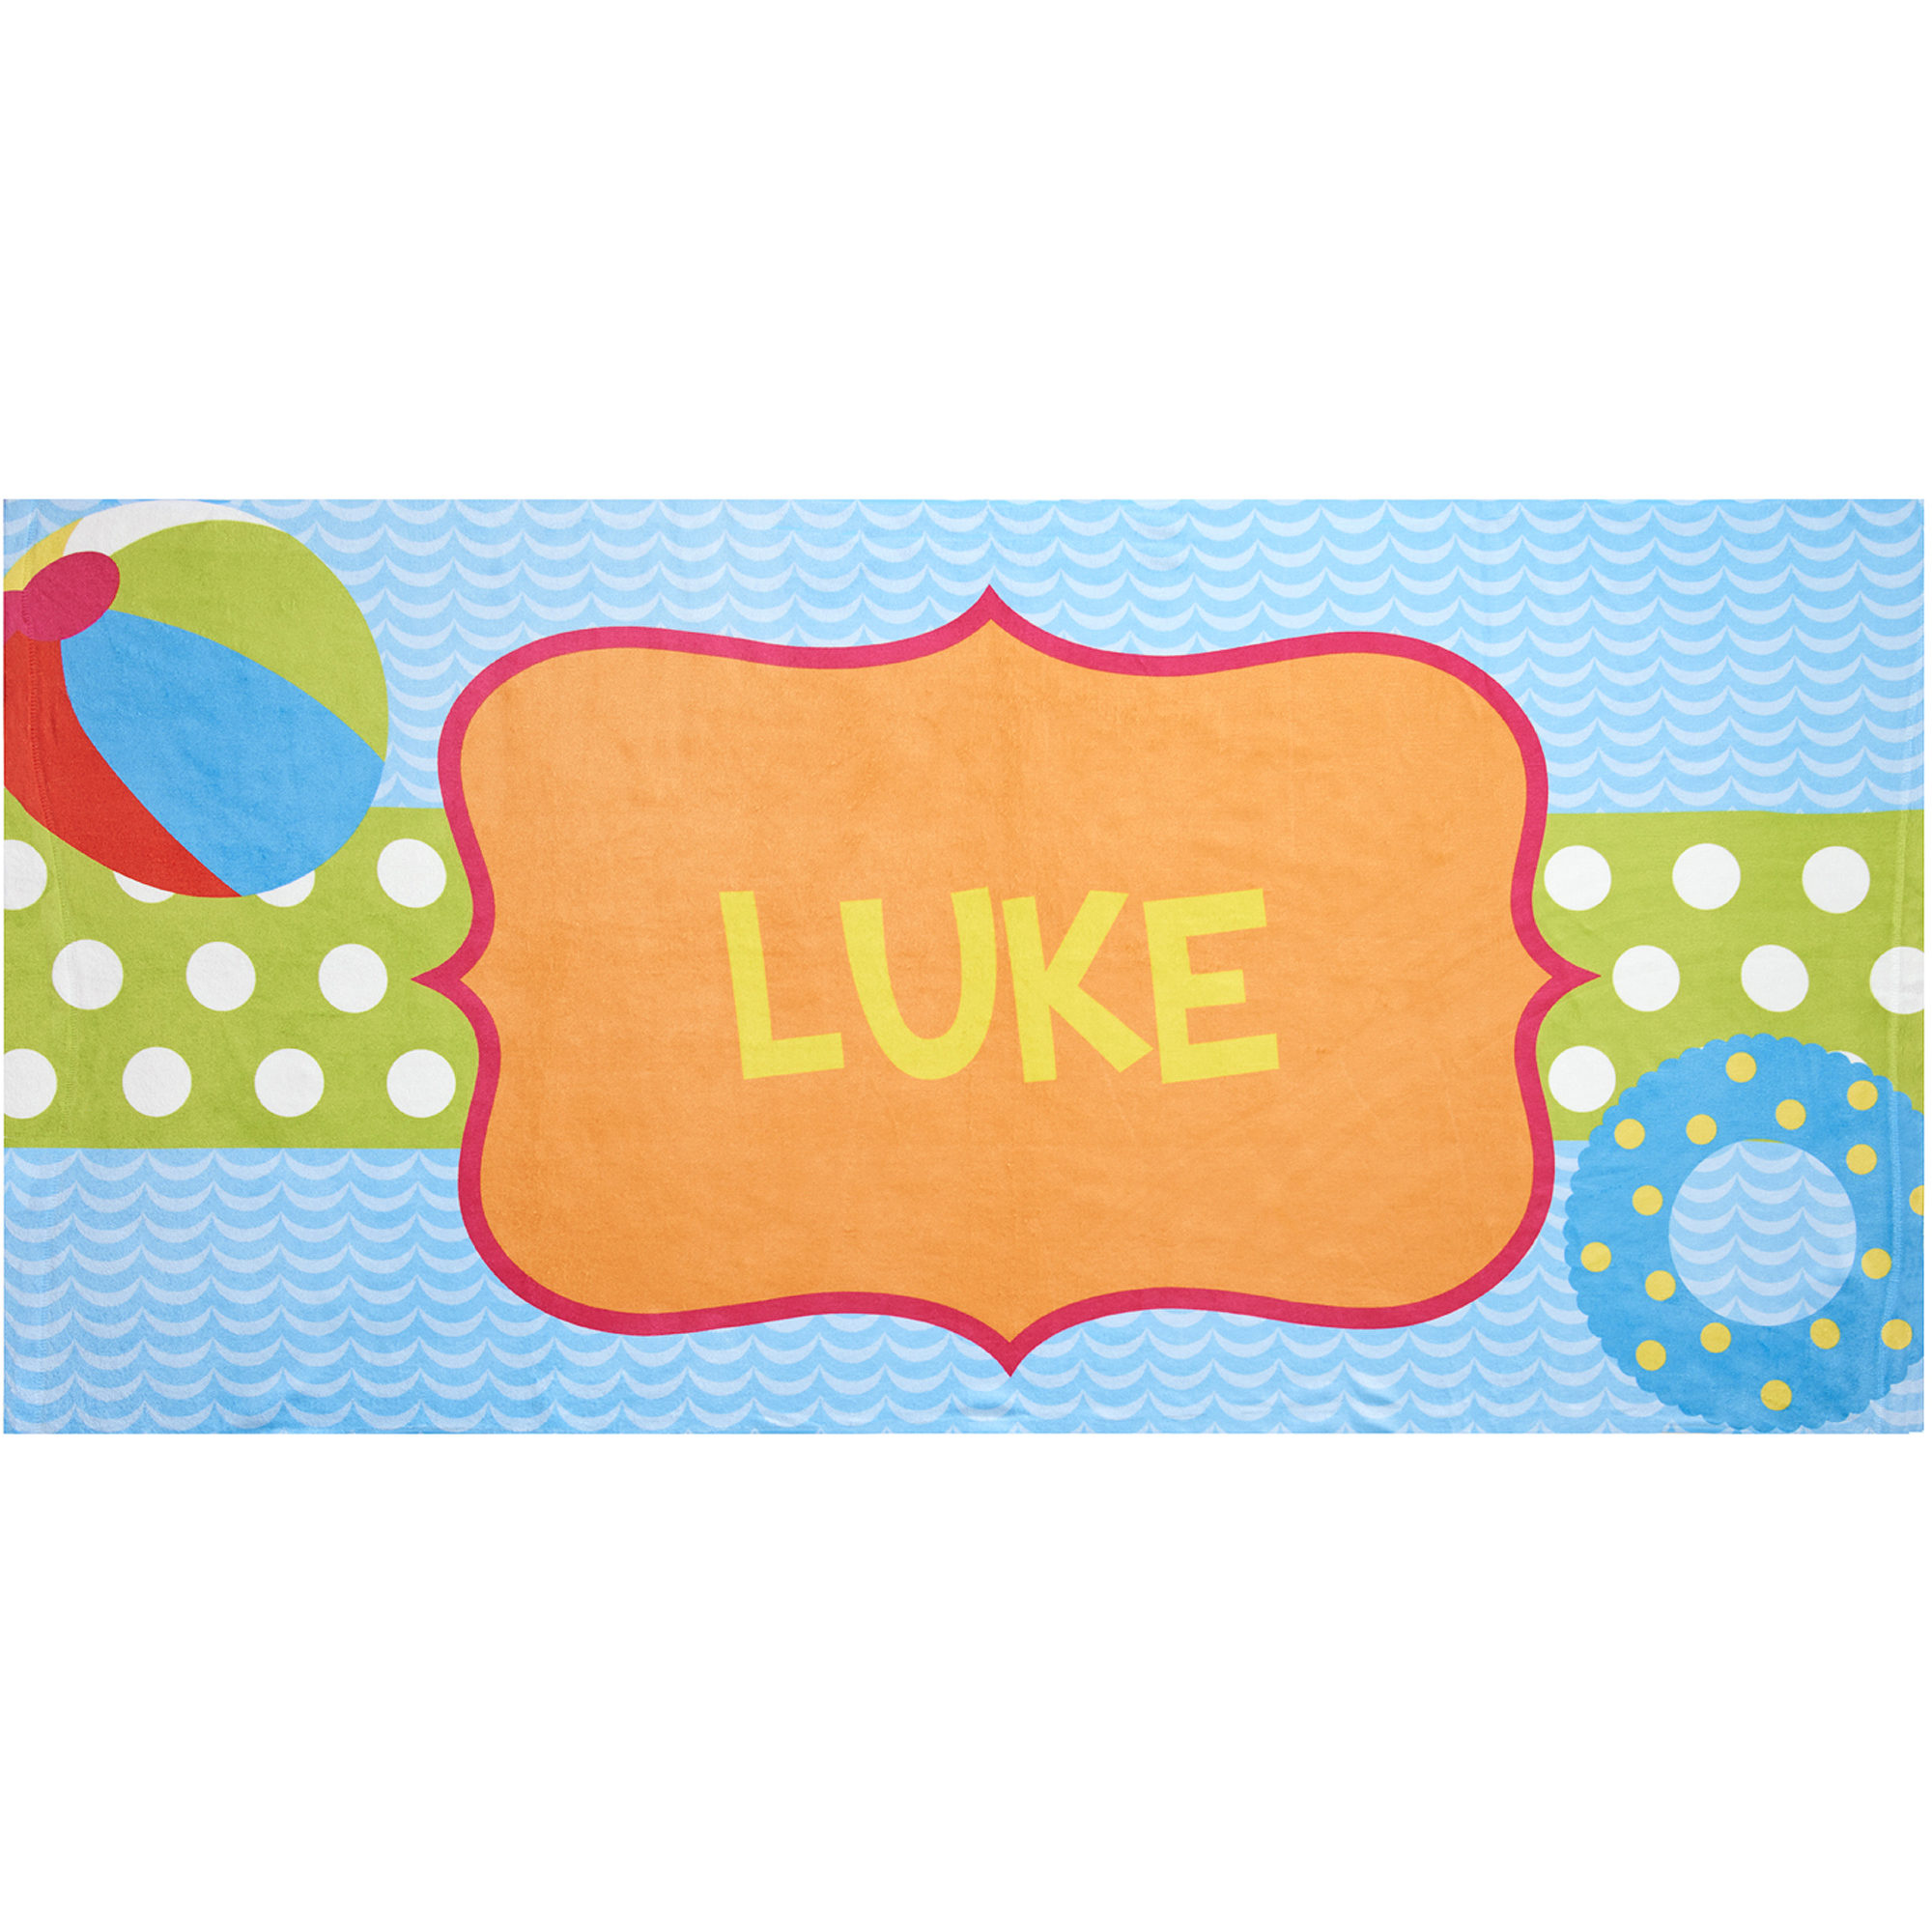 Personalized Pool Fun Beach Towel